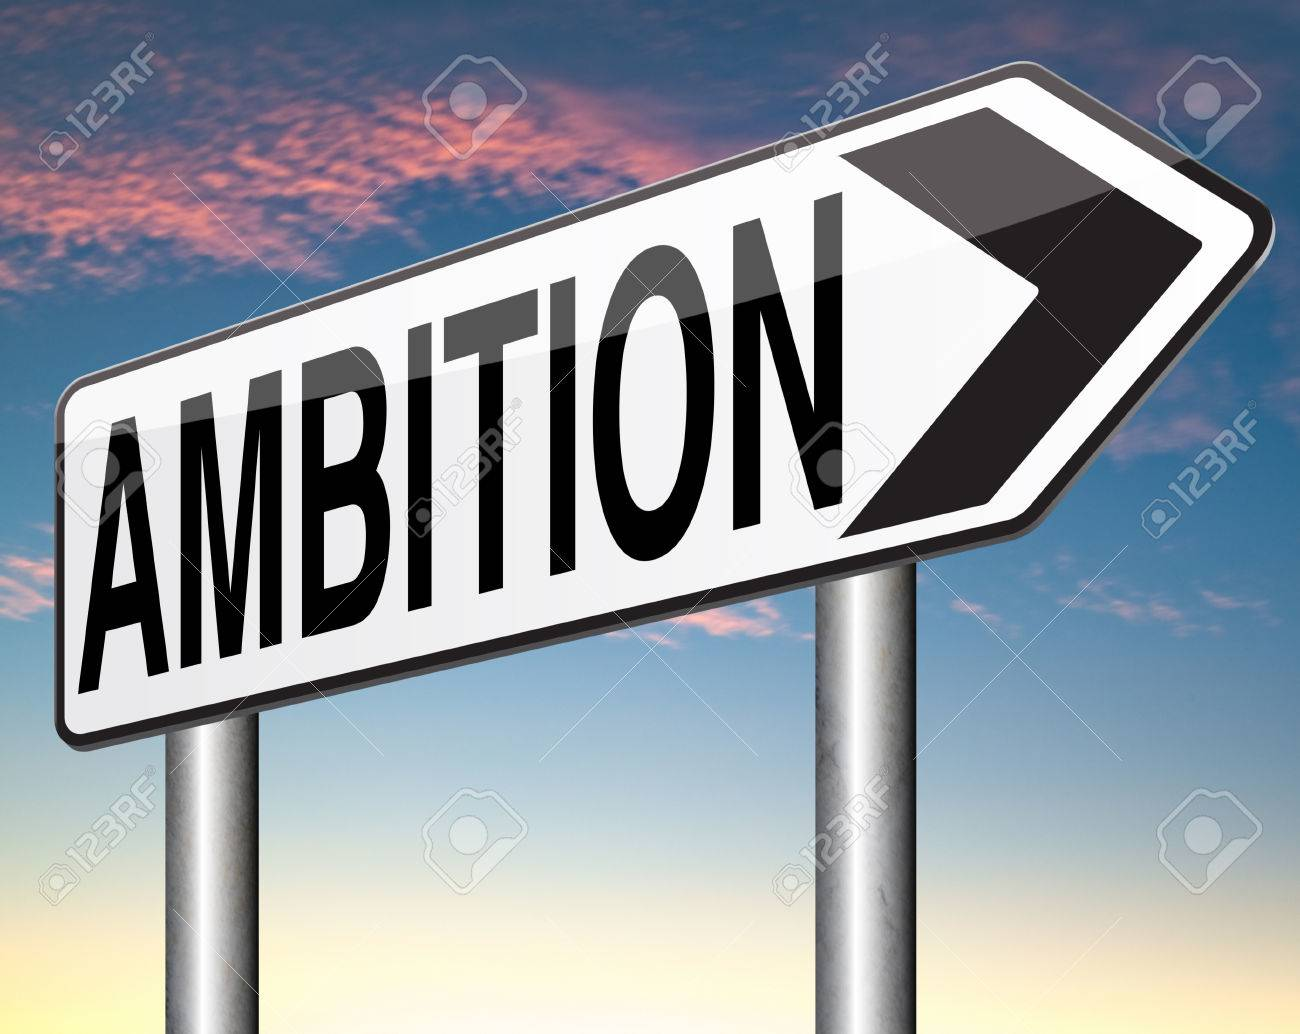 ambition dream and think big set and achieve personal goals change stock photo ambition dream and think big set and achieve personal goals change future and be successful banner or sign